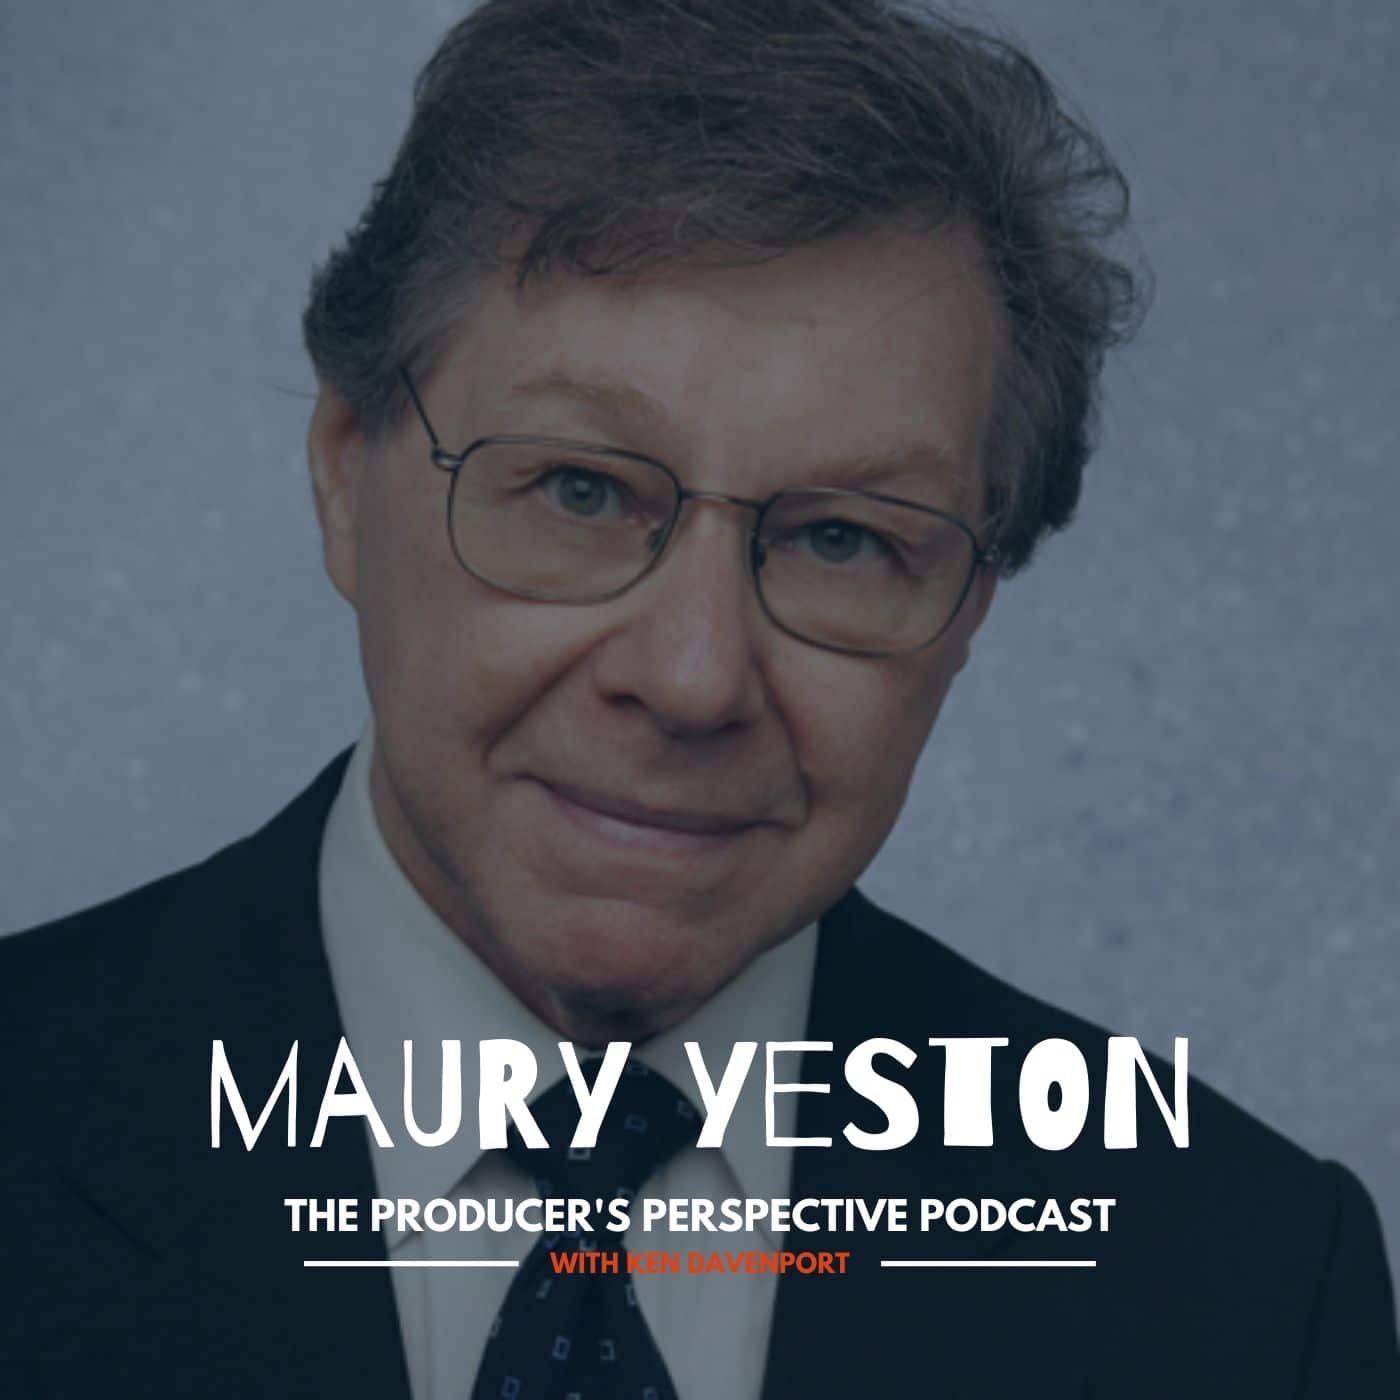 Ken Davenport's The Producer's Perspective Podcast Episode 176 - Maury Yeston